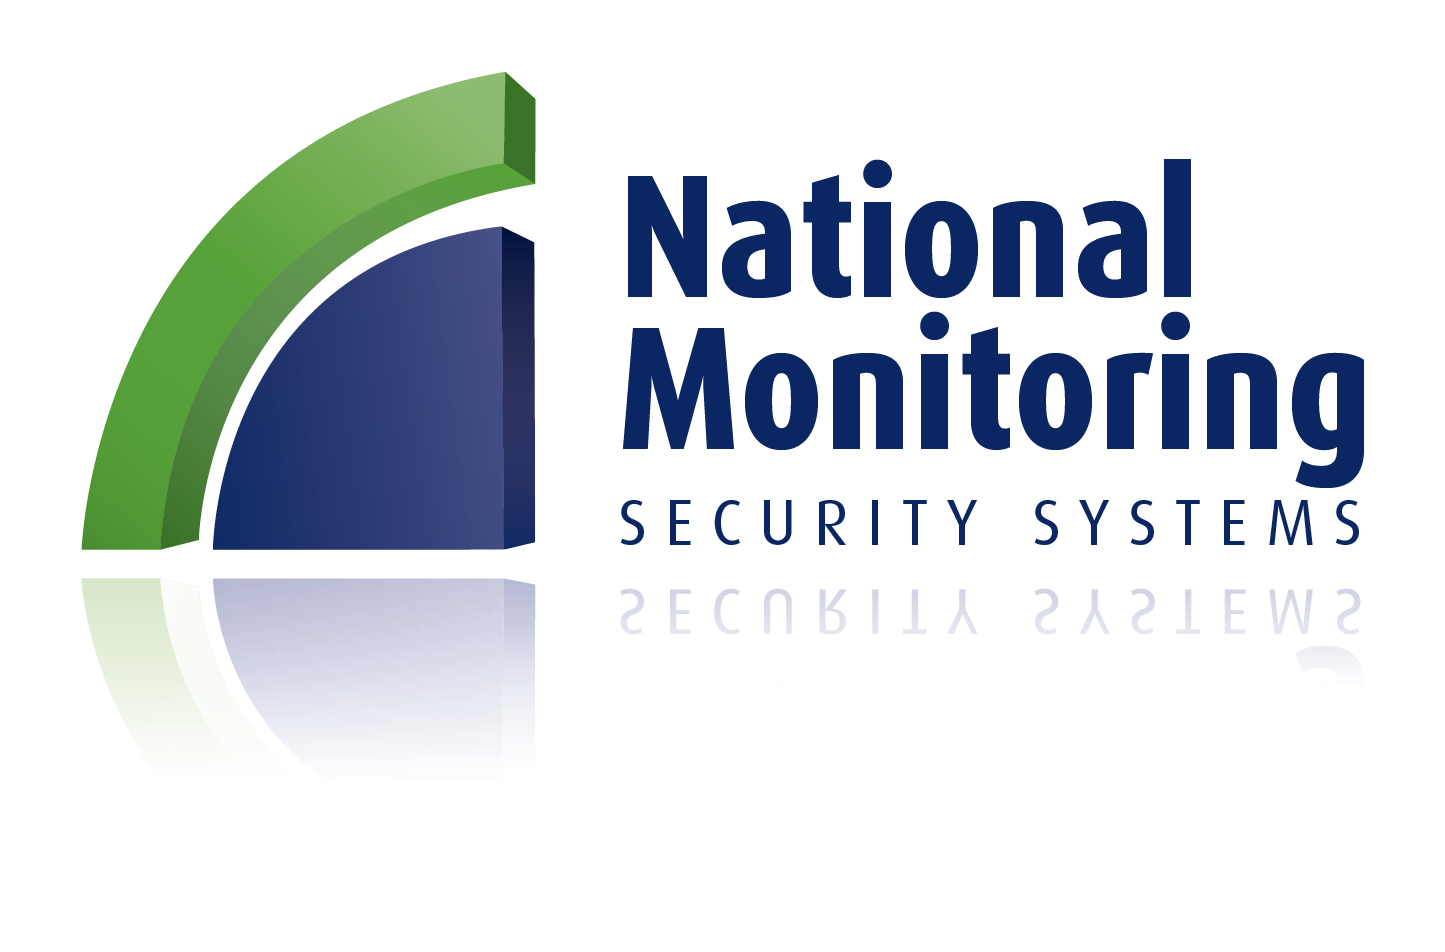 National Monitoring